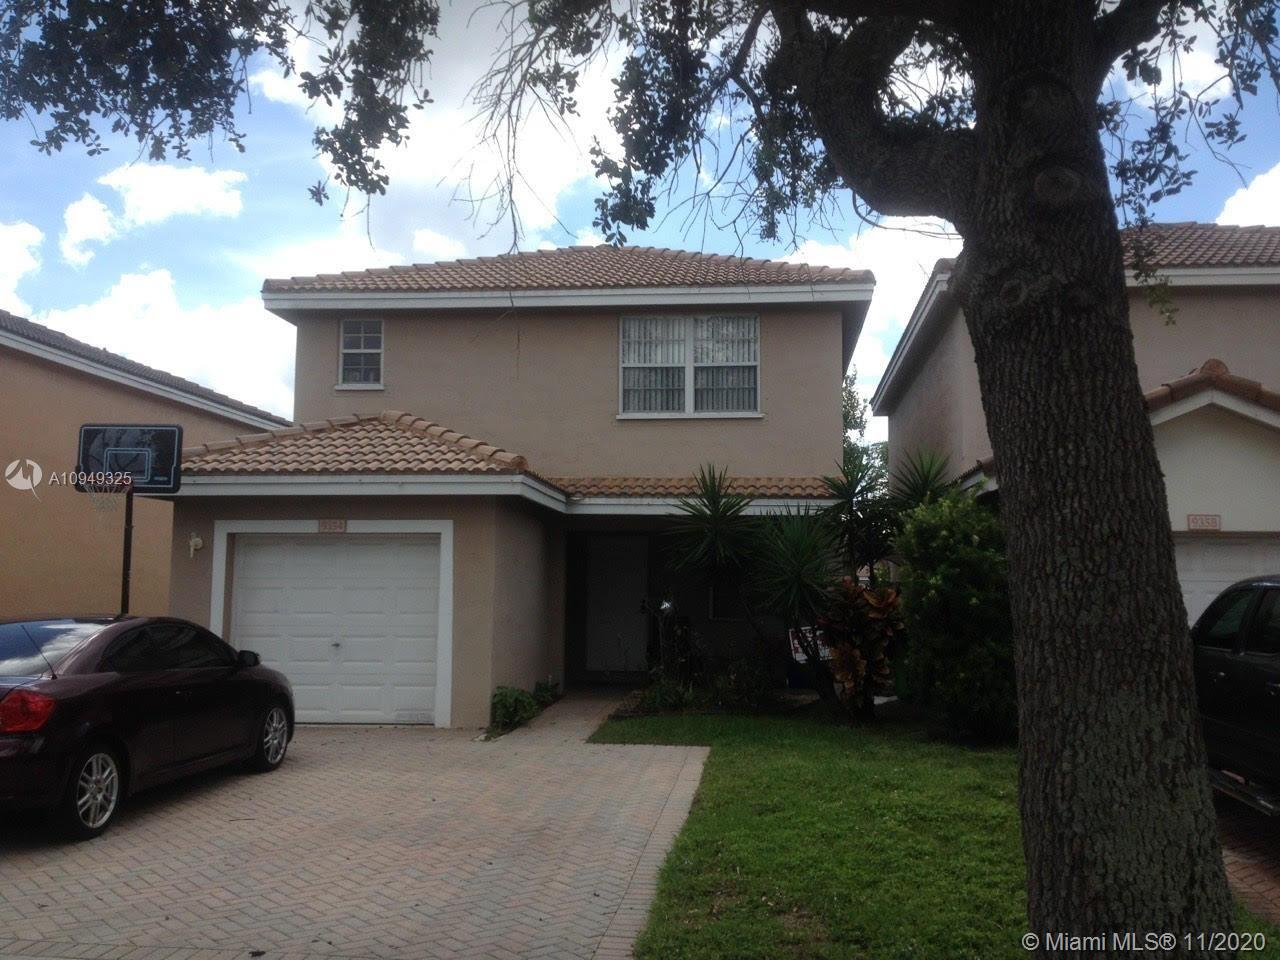 Well Kept, relaxing lake view, 3 bedroom 2.5 bath home located in West Sunrise.  Easily accessible to major highways for easy commute.  Home located within walking distance to restaurants, parks, and shopping center.  Conveniently located to 3 schools.  Easy walk to park and community pool.  